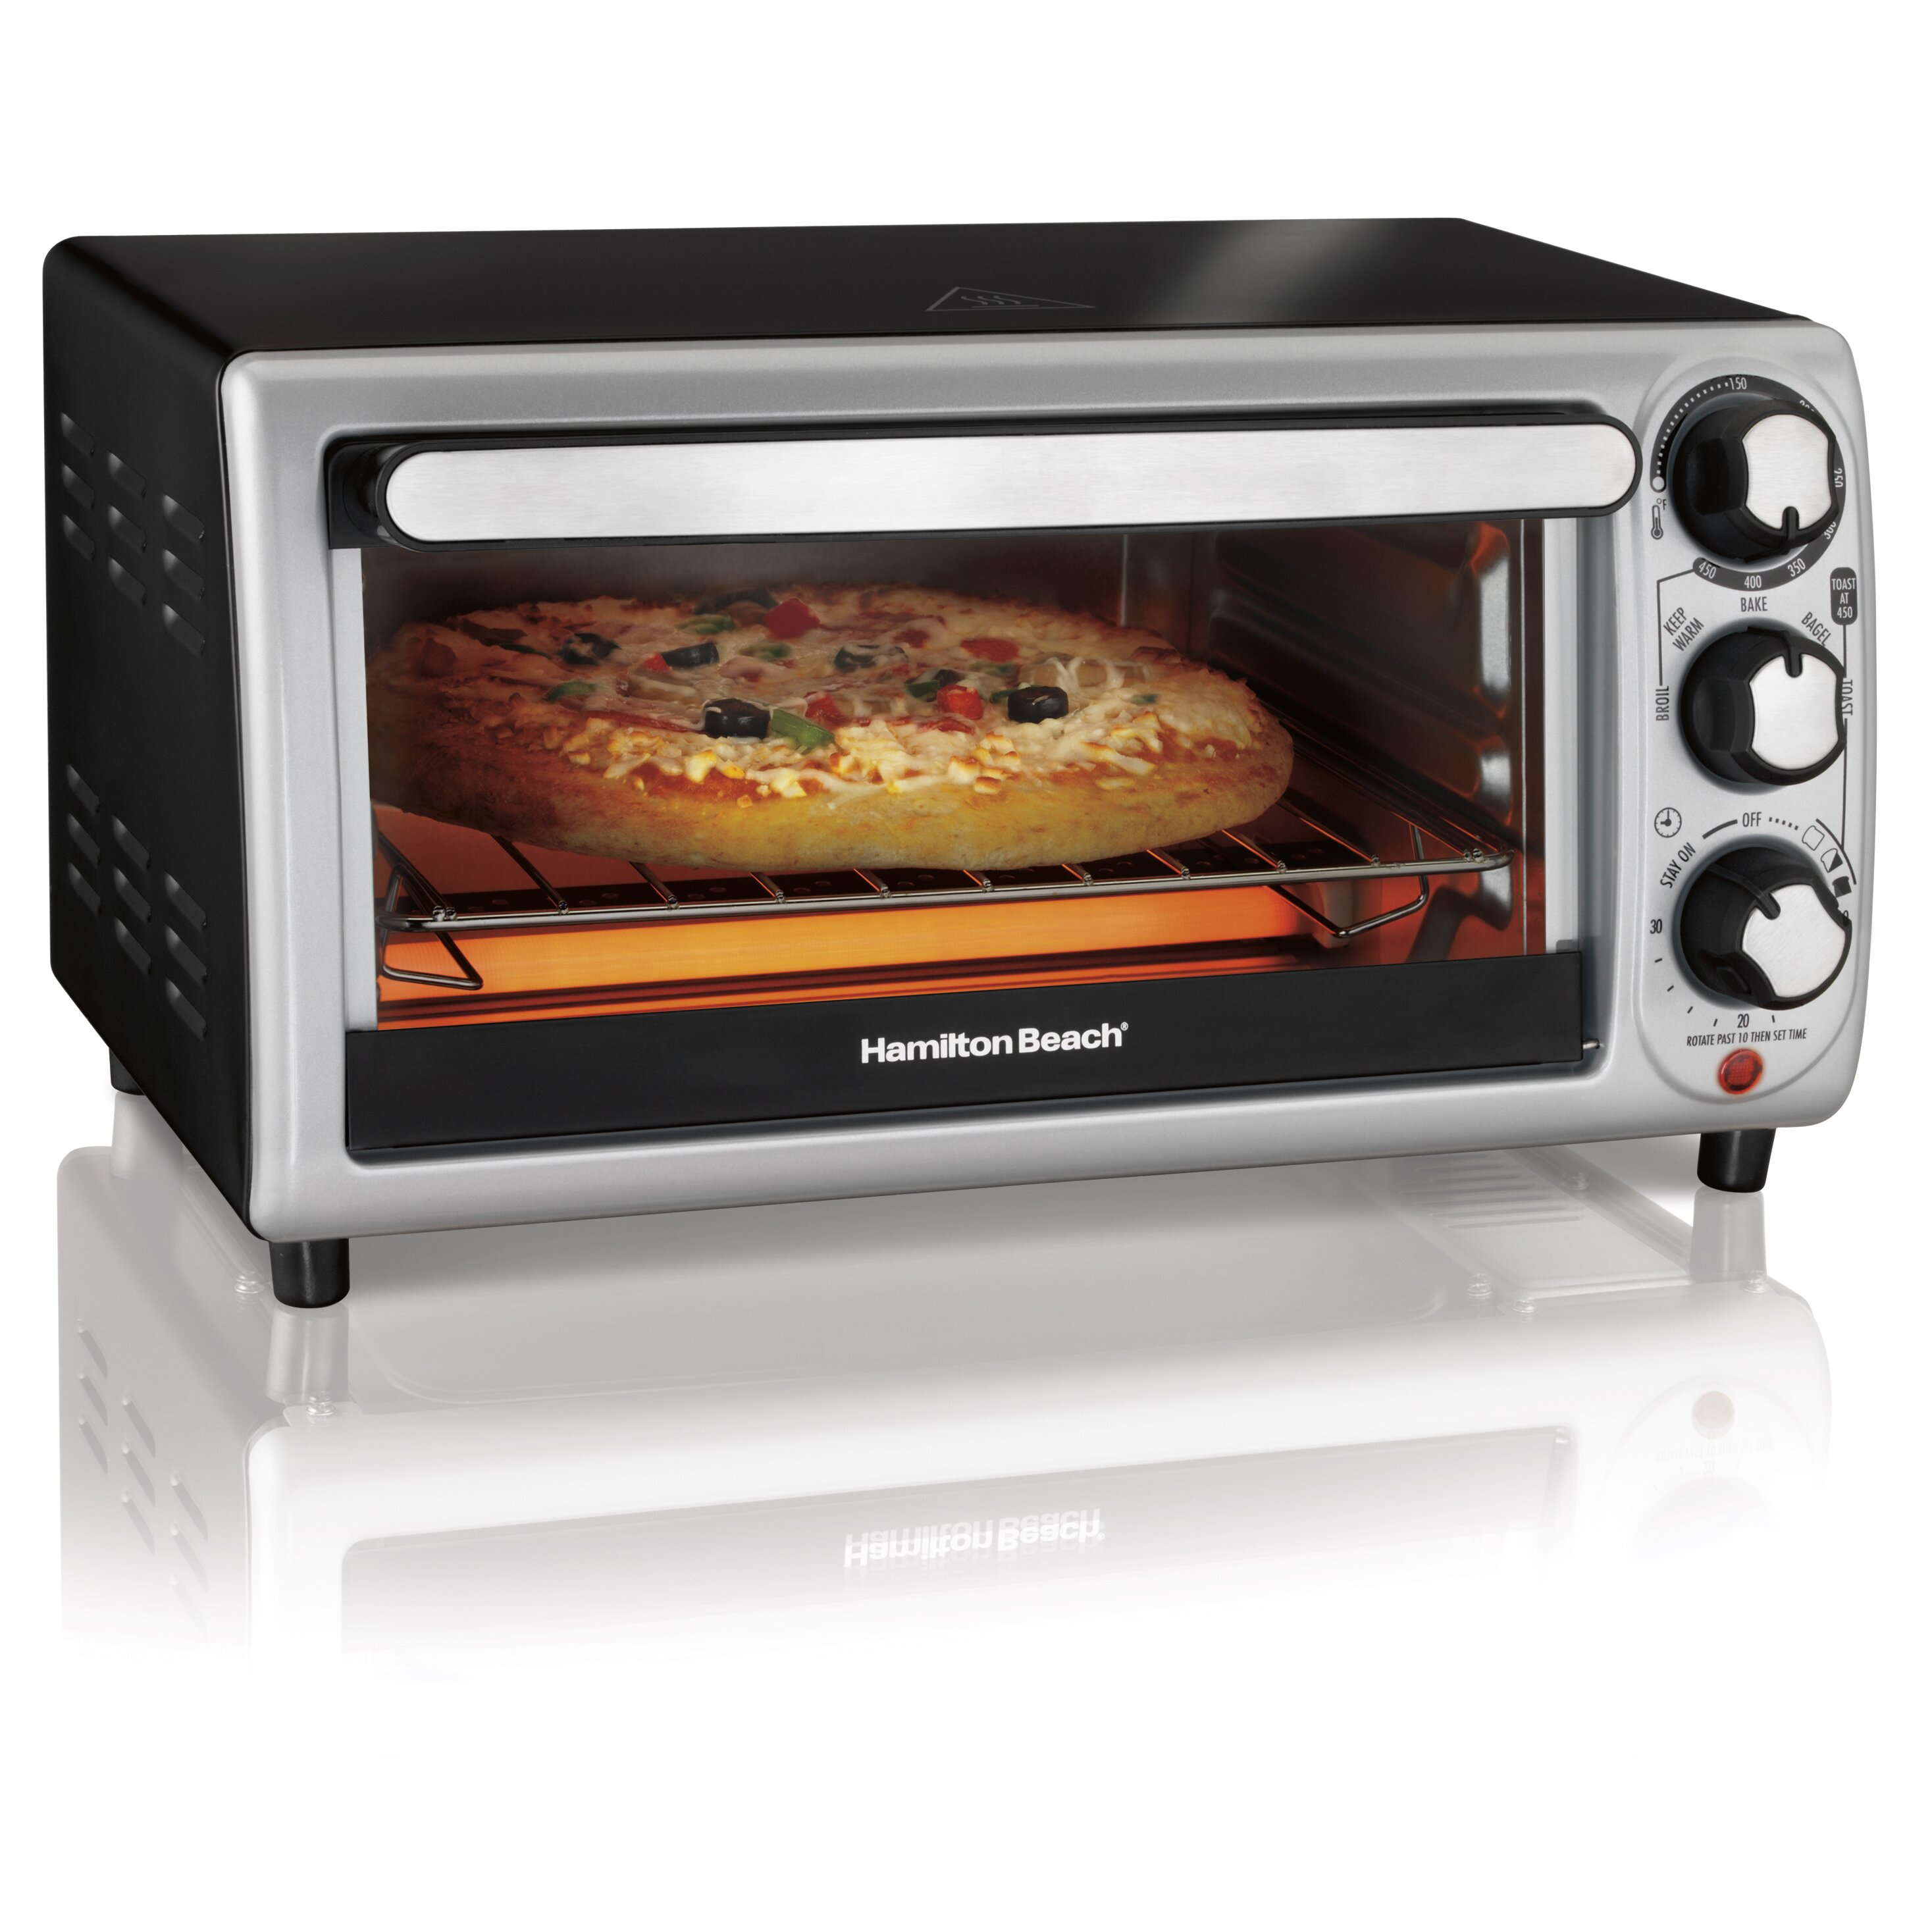 Best Under Cabinet Toaster Oven Hamilton Beach 4 Slice Toaster Oven Reviews Wayfair